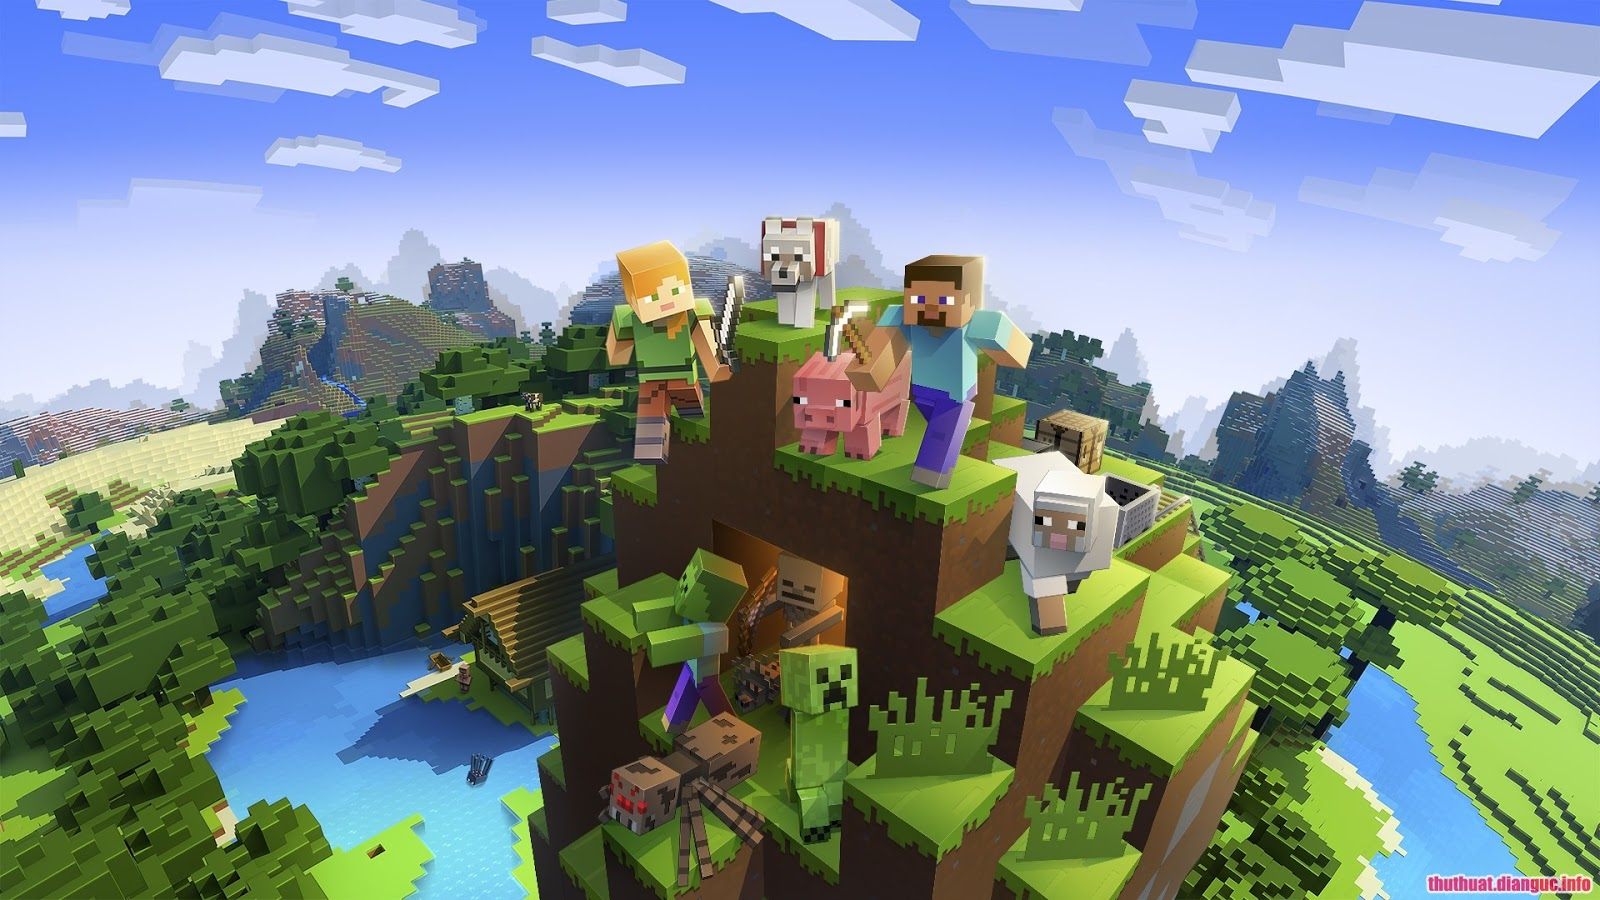 Download Minecraft – Game xây dựng thế giới mở kết hợp sinh tồn